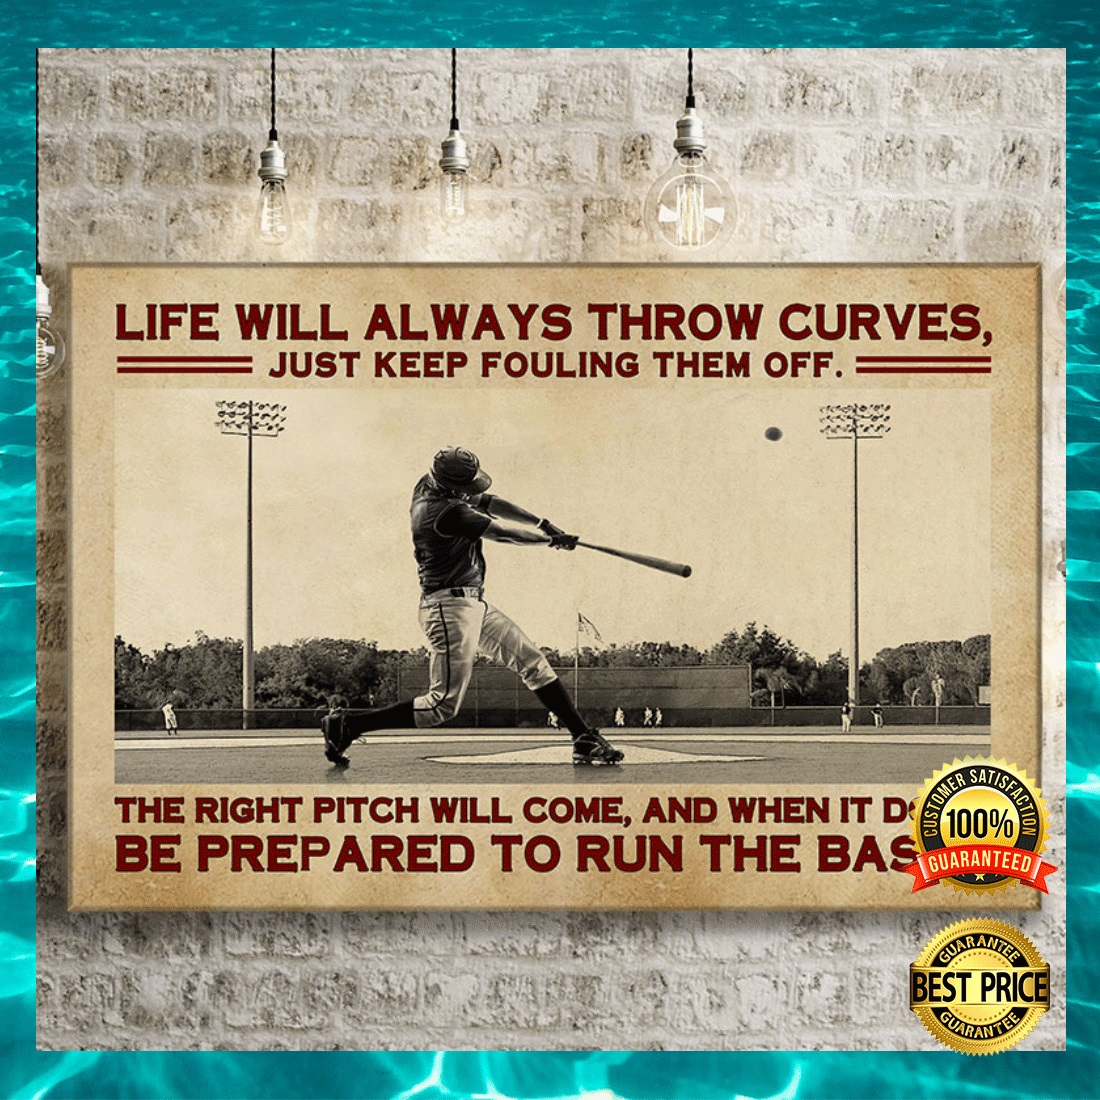 BASEBALL LIFE WILL ALWAYS THROW CURVES JUST KEEP FOULING THEM OFF CANVAS 4